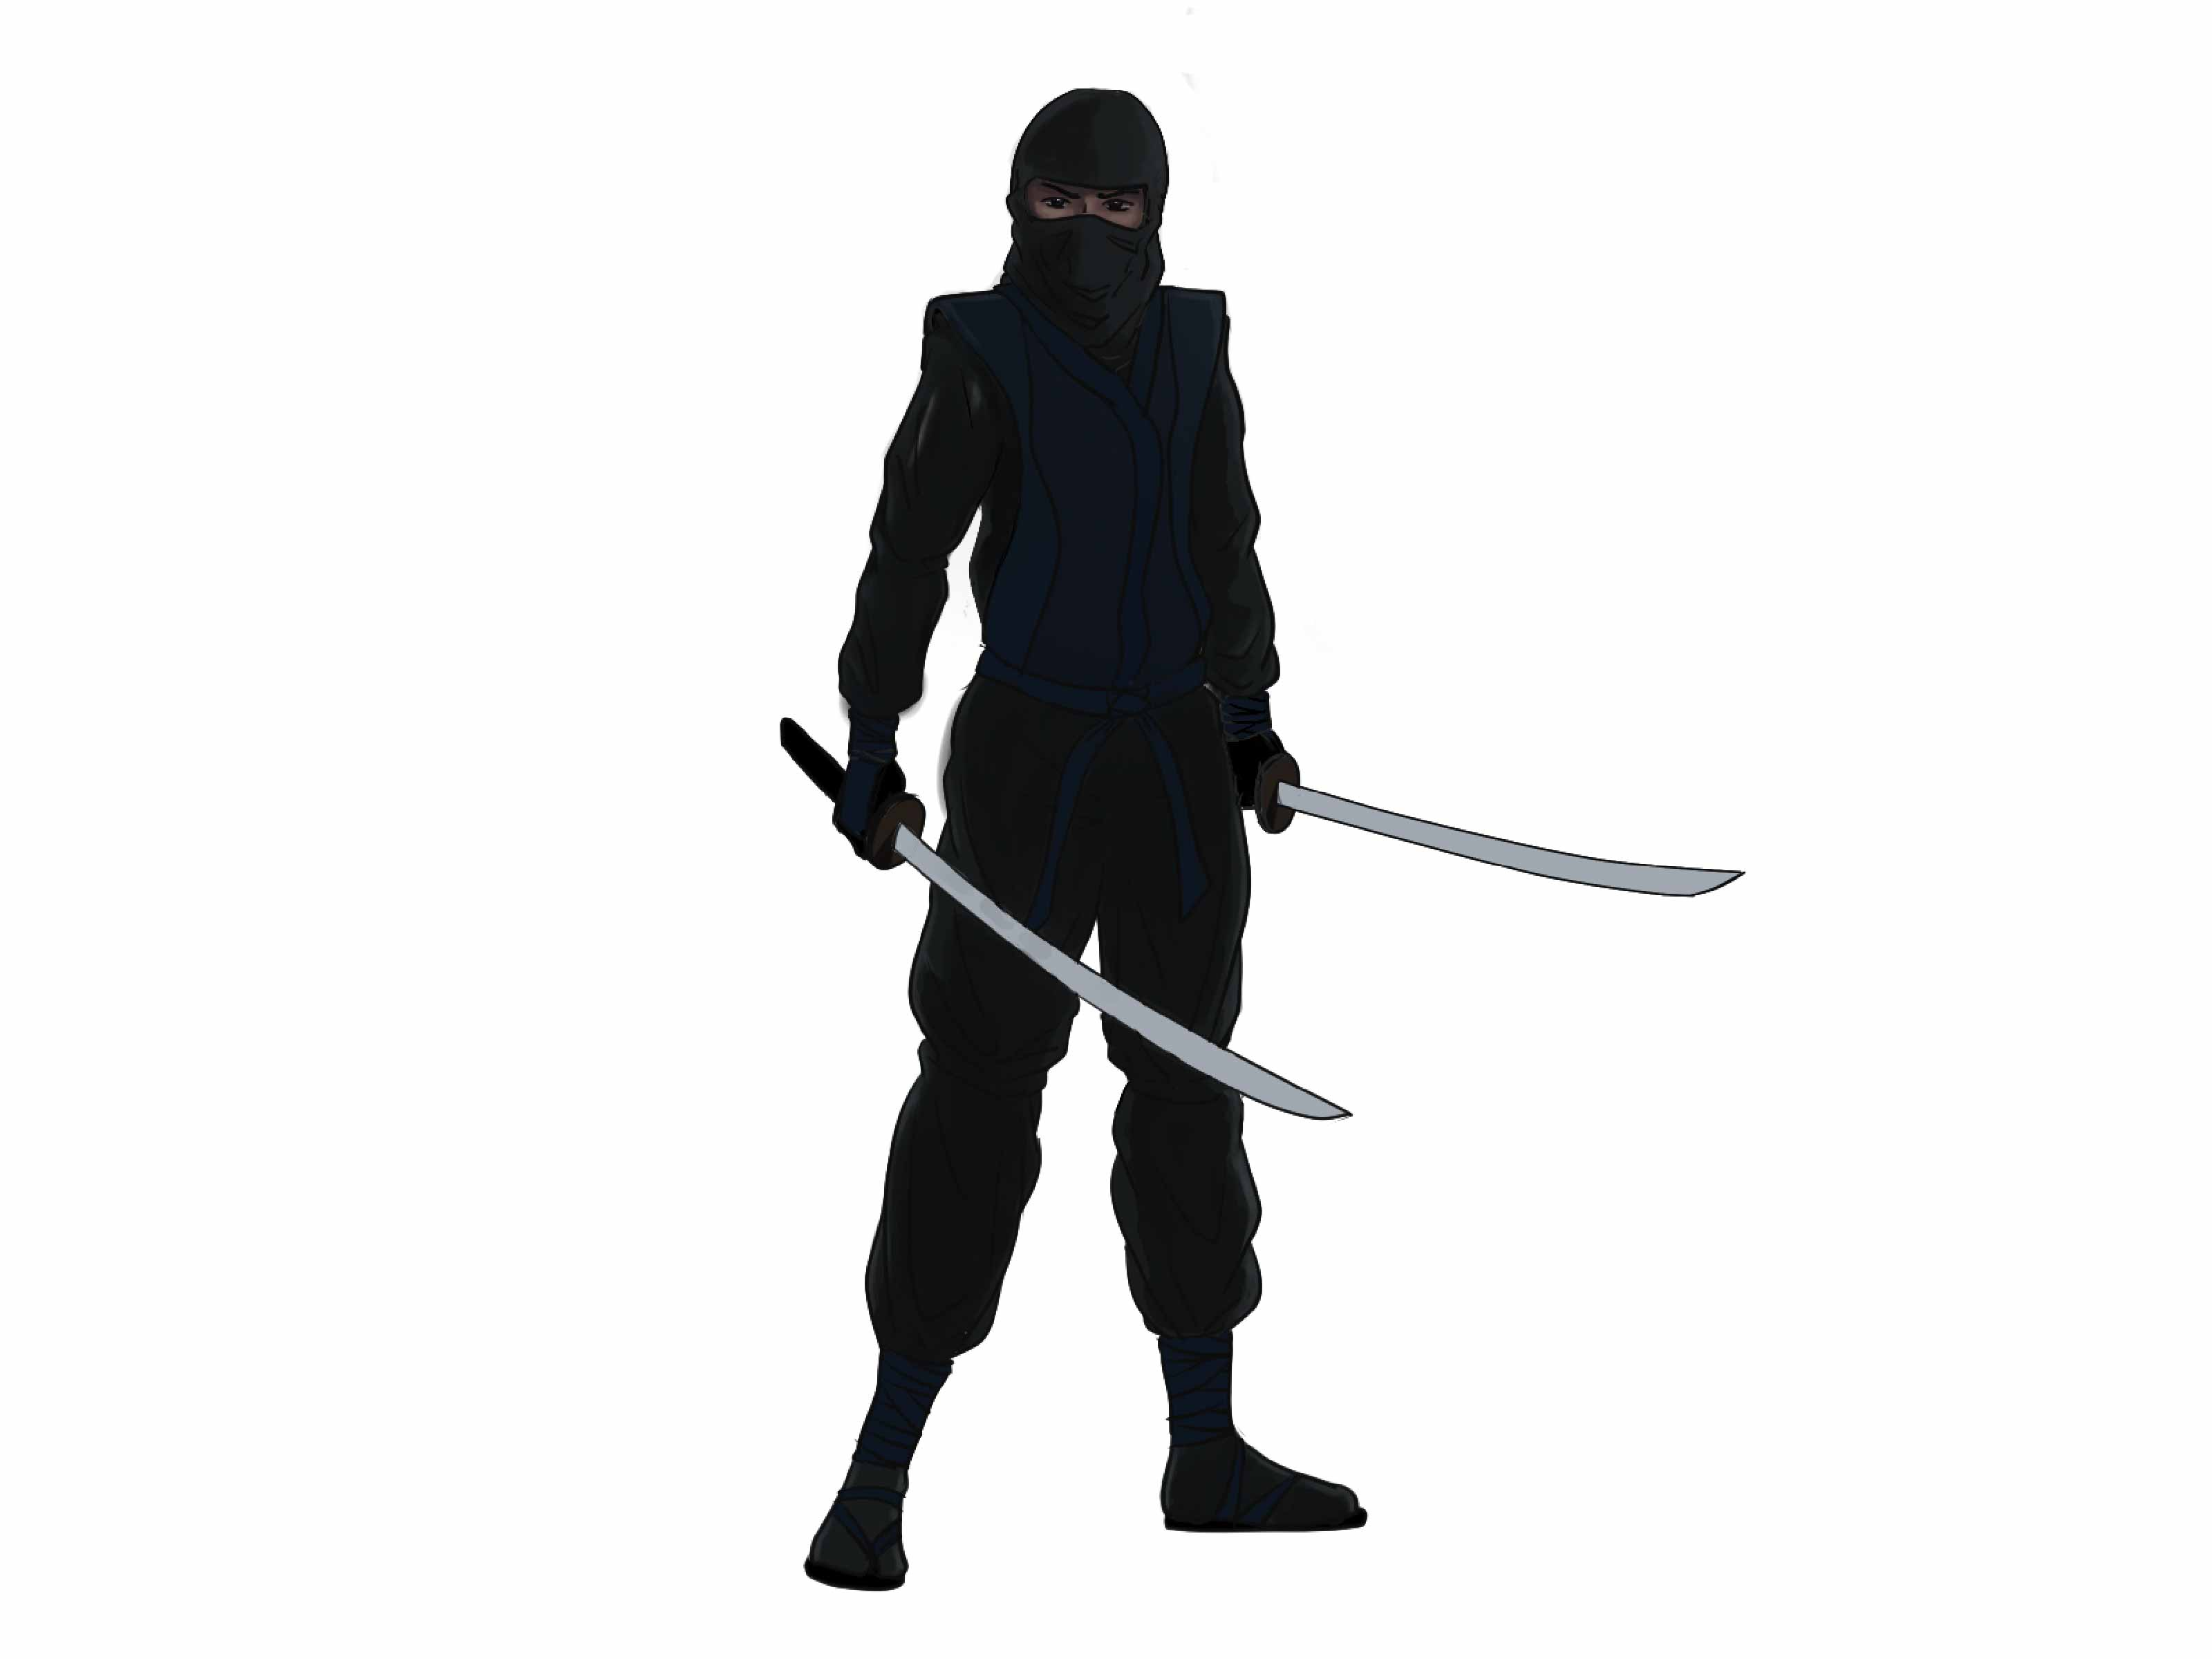 3200x2400 How To Draw A Ninja (With Pictures)